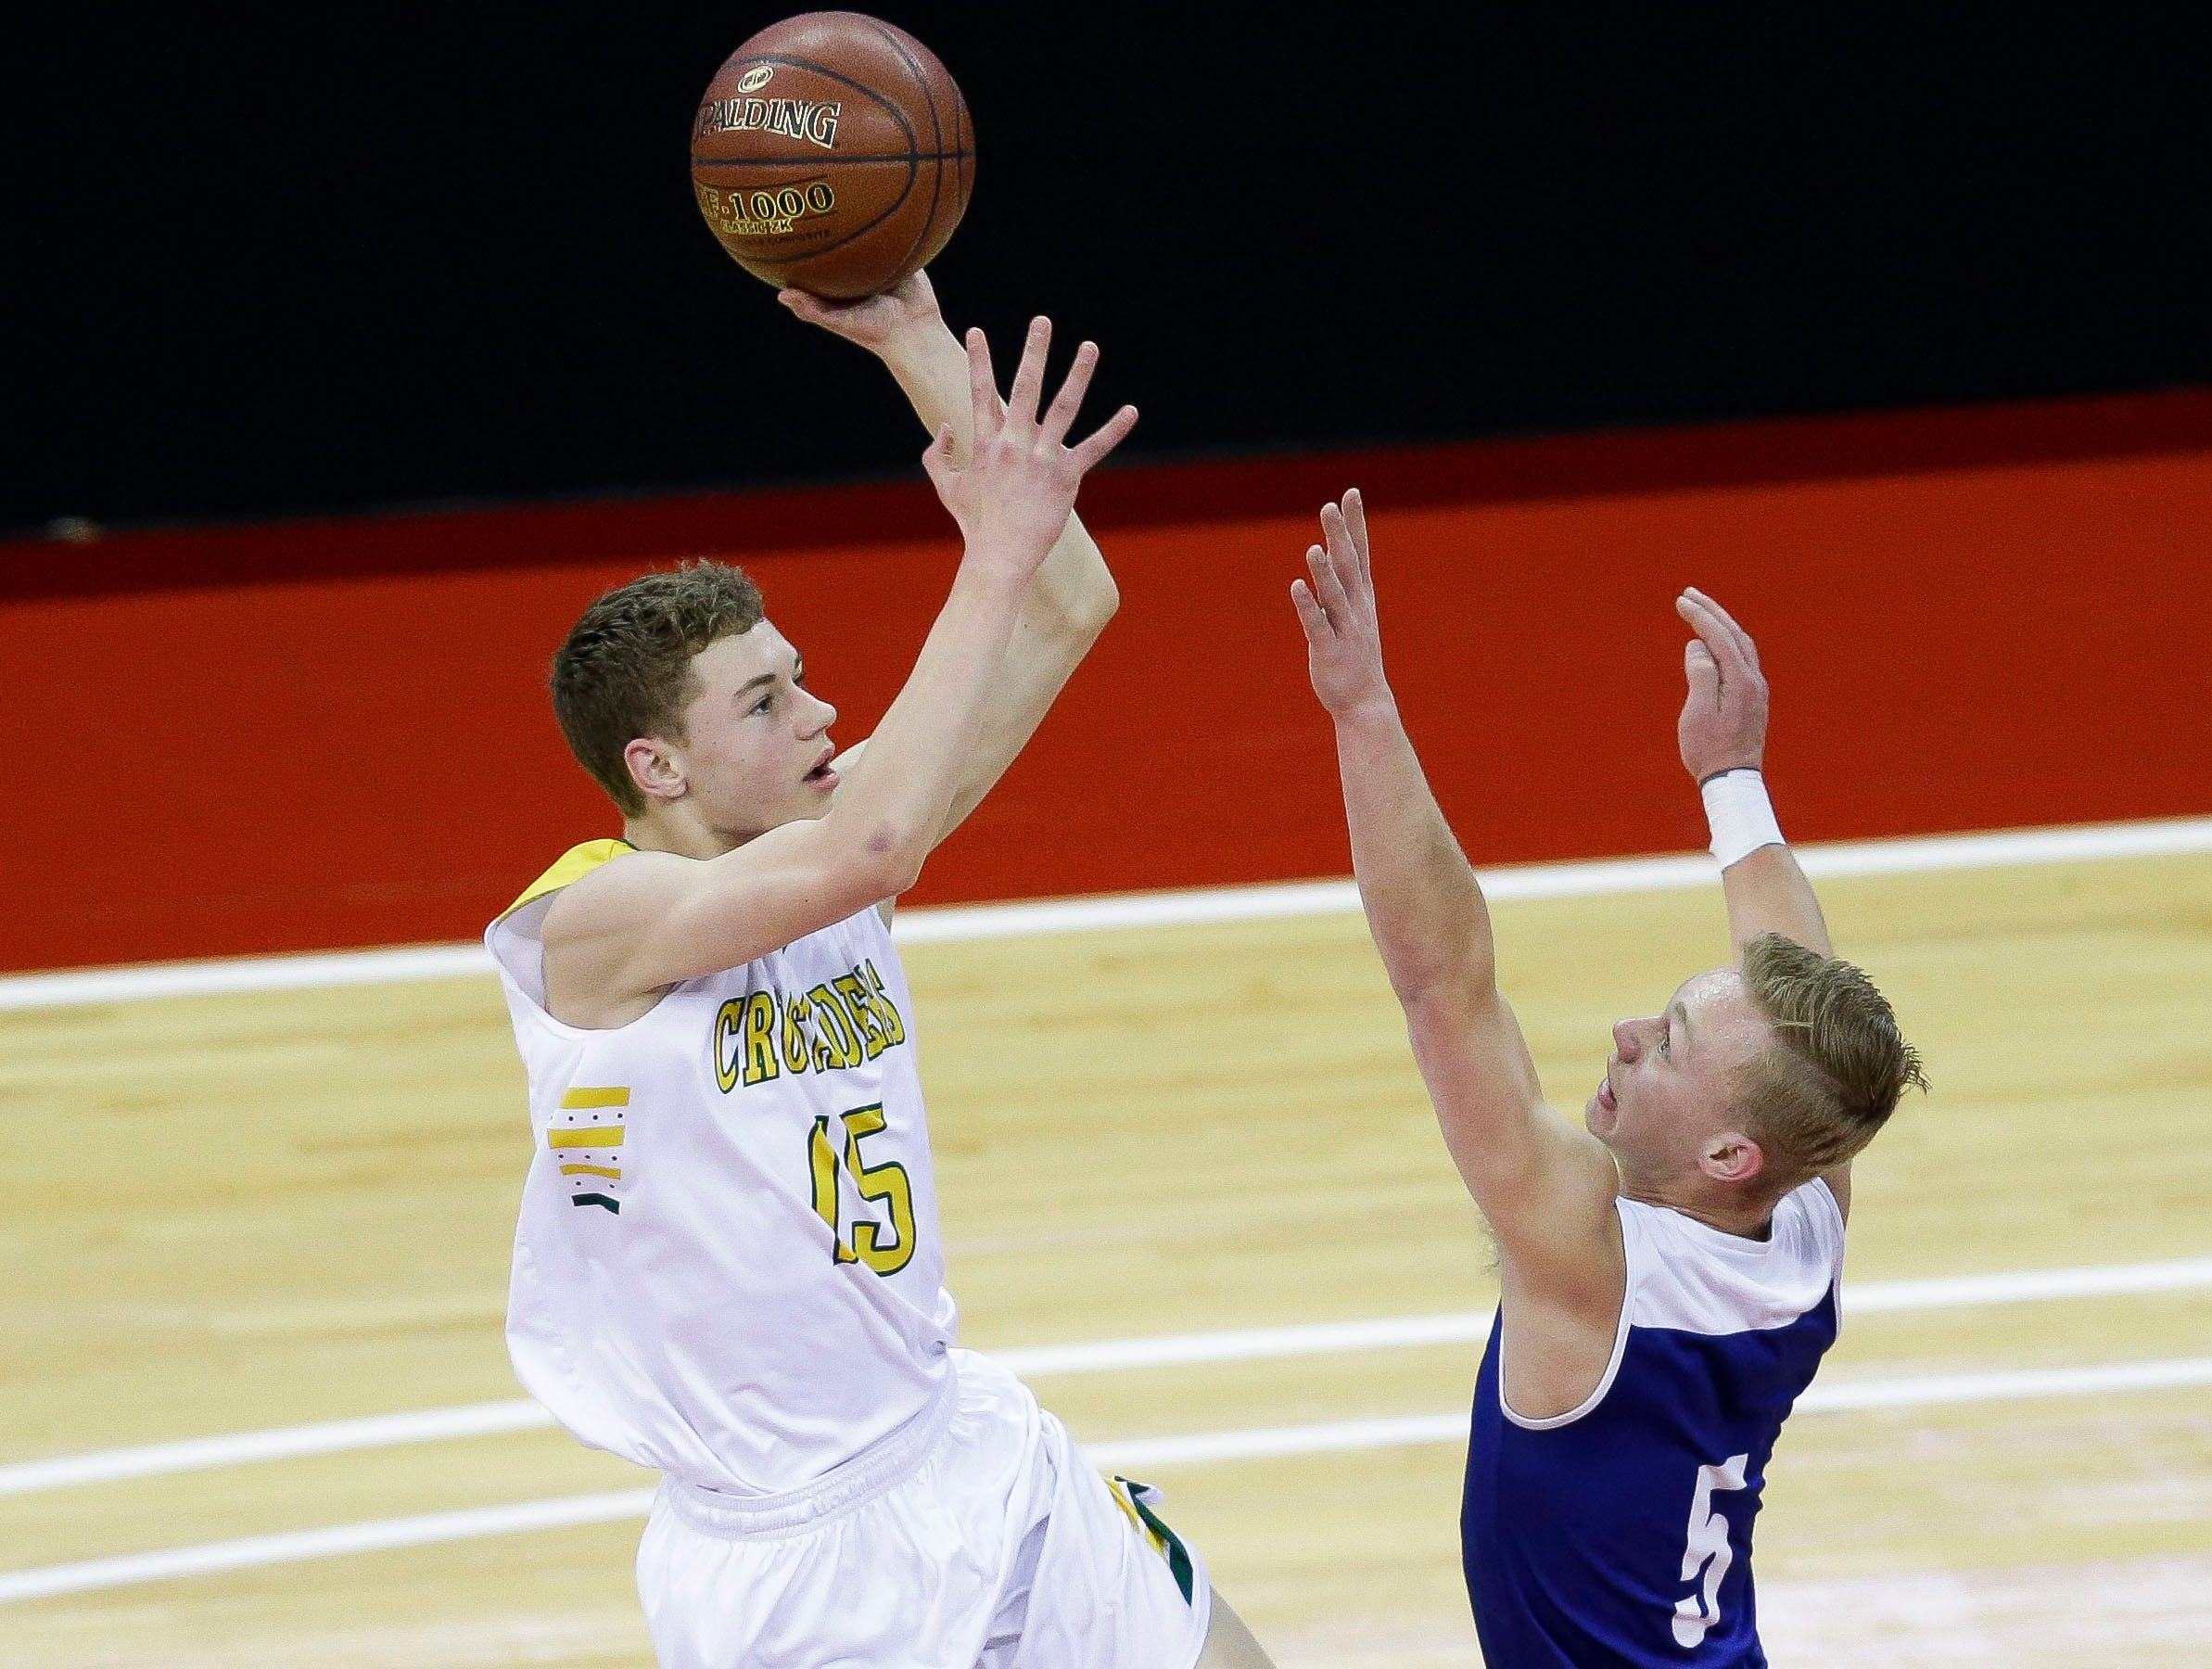 Sheboygan Lutheran High School's Delvin Barnstable (15) puts up a shot over McDonell Central Catholic High School's Jaebin Bourget (5) in a Division 5 boys basketball state semifinal on Friday, March 15, 2019, at the Kohl Center in Madison, Wis.